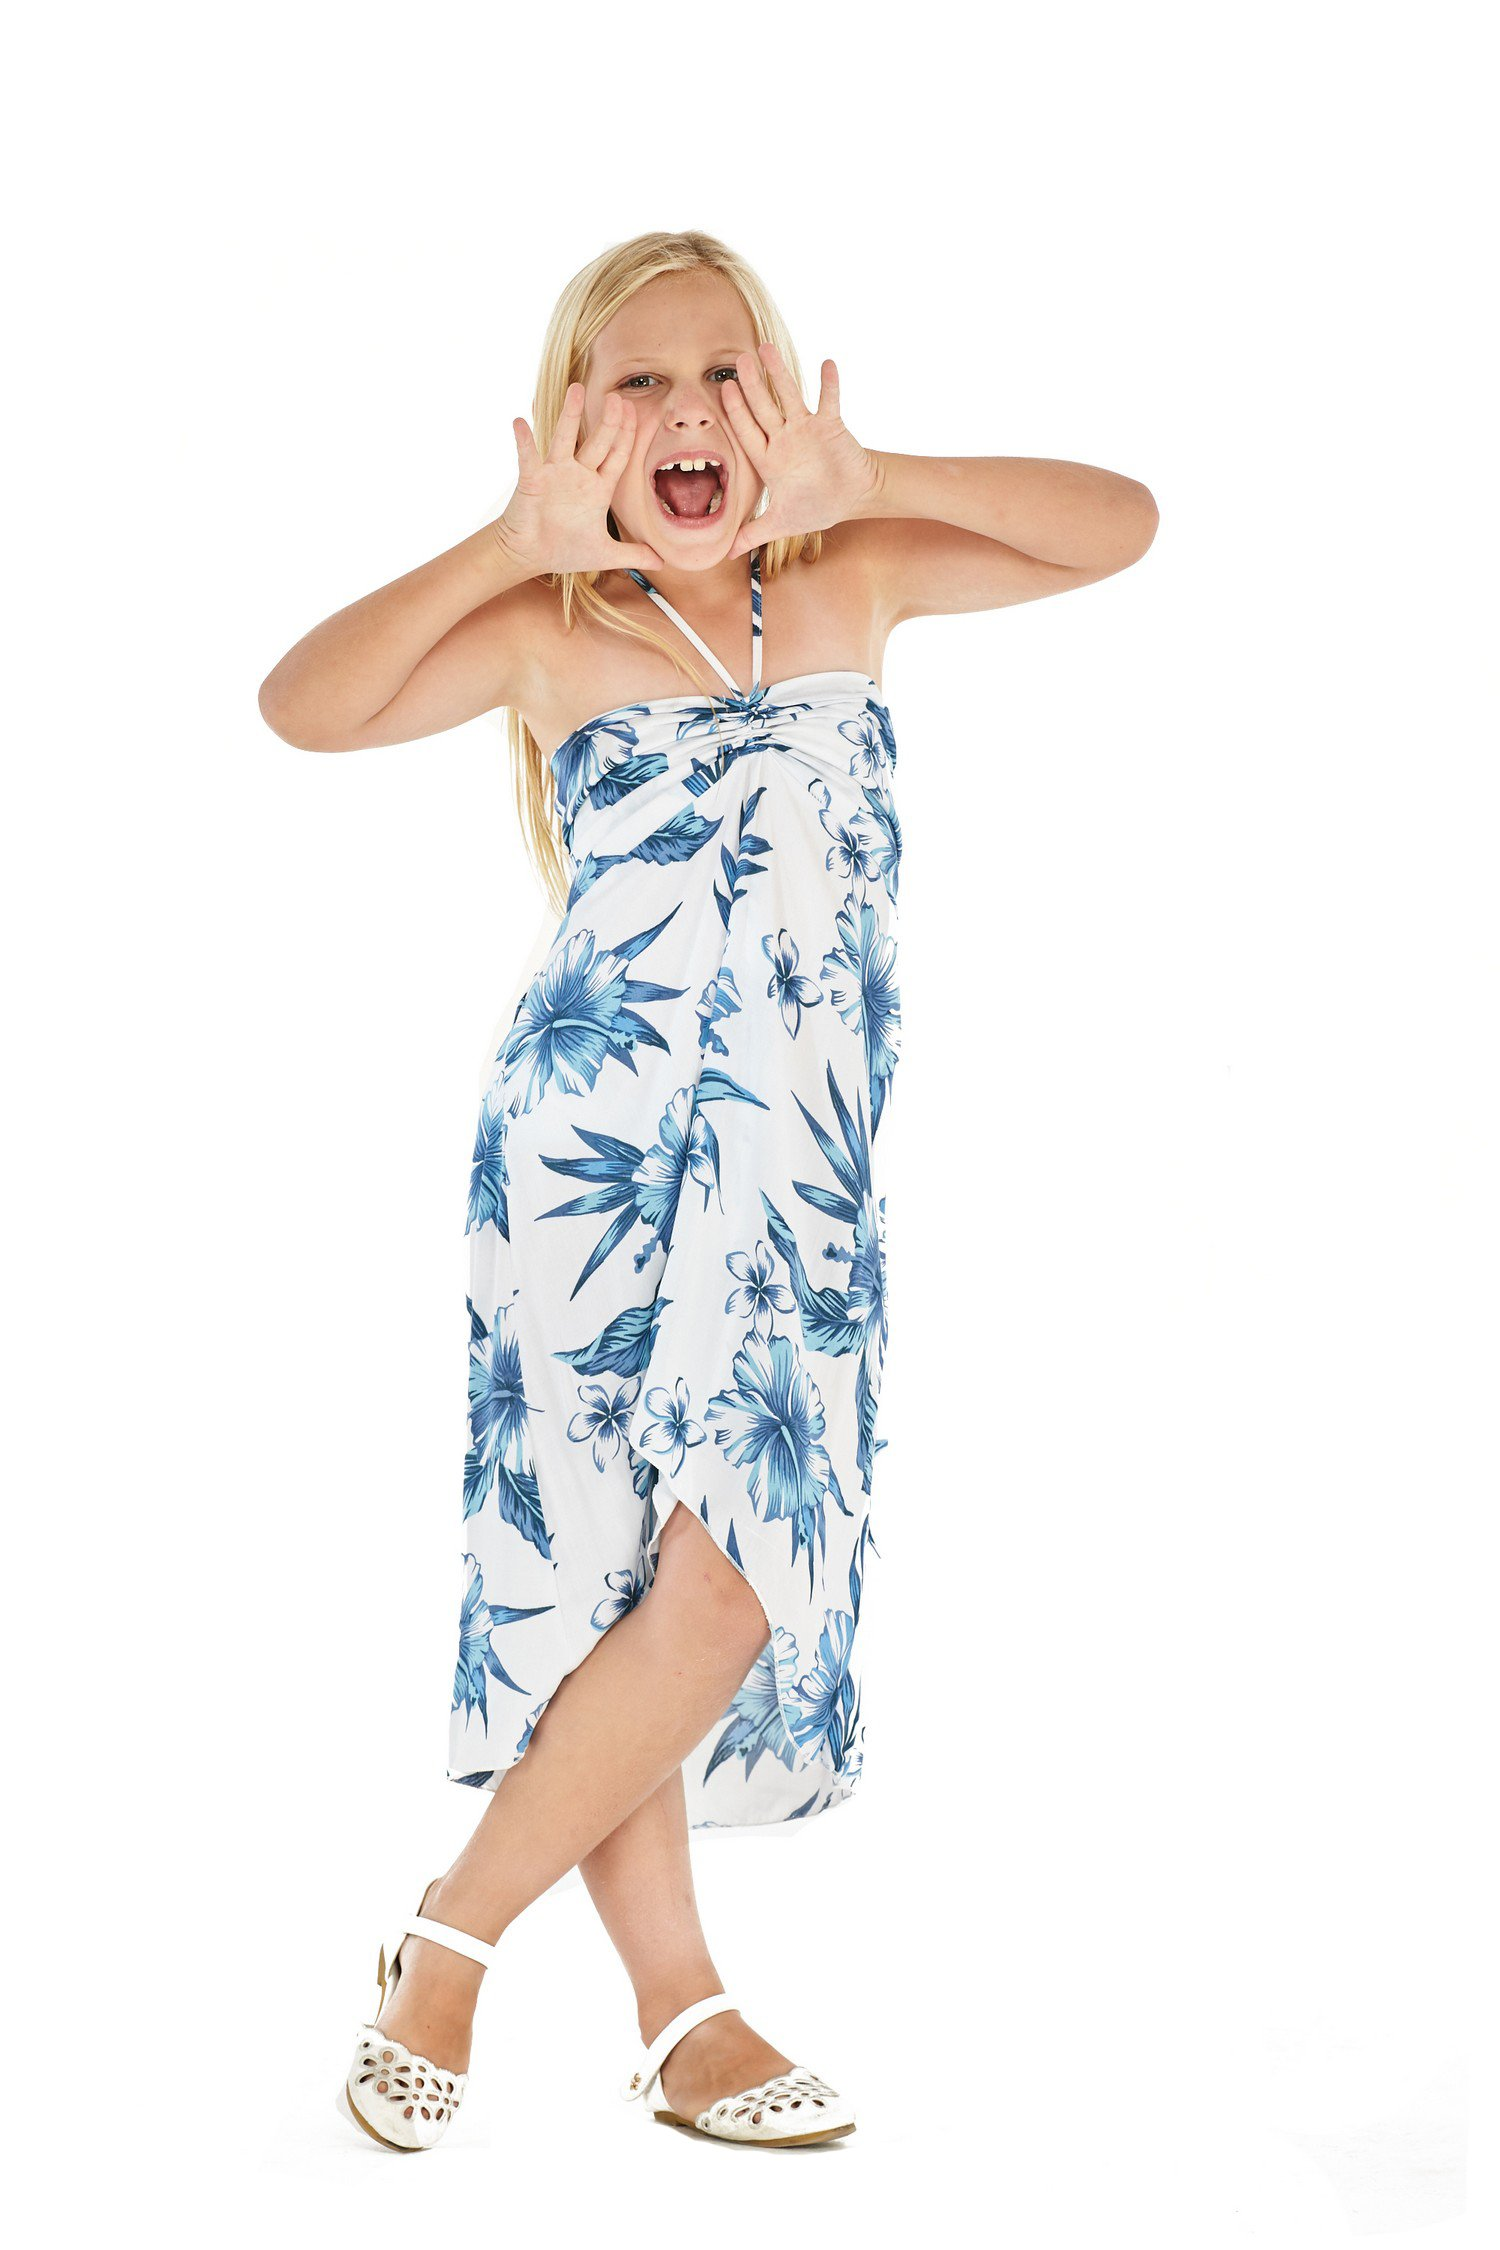 Girl Hawaiian Blutterfly Dress and Ruffle Straw Hat with Matching Band in Day Dream Bloom Size 8 by Hawaii Hangover (Image #2)